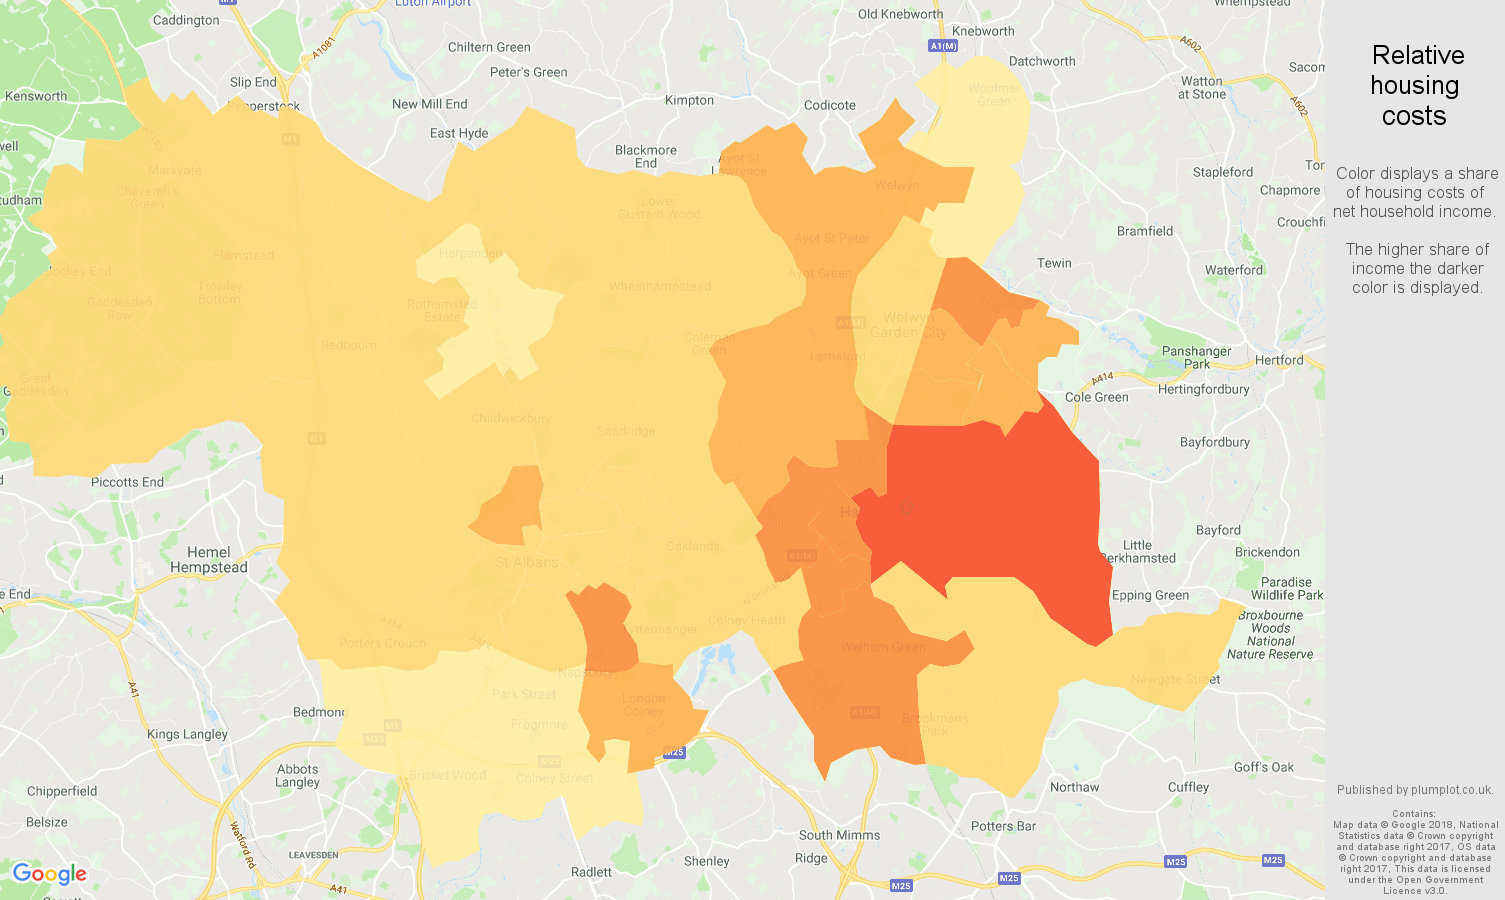 St Albans relative housing costs map